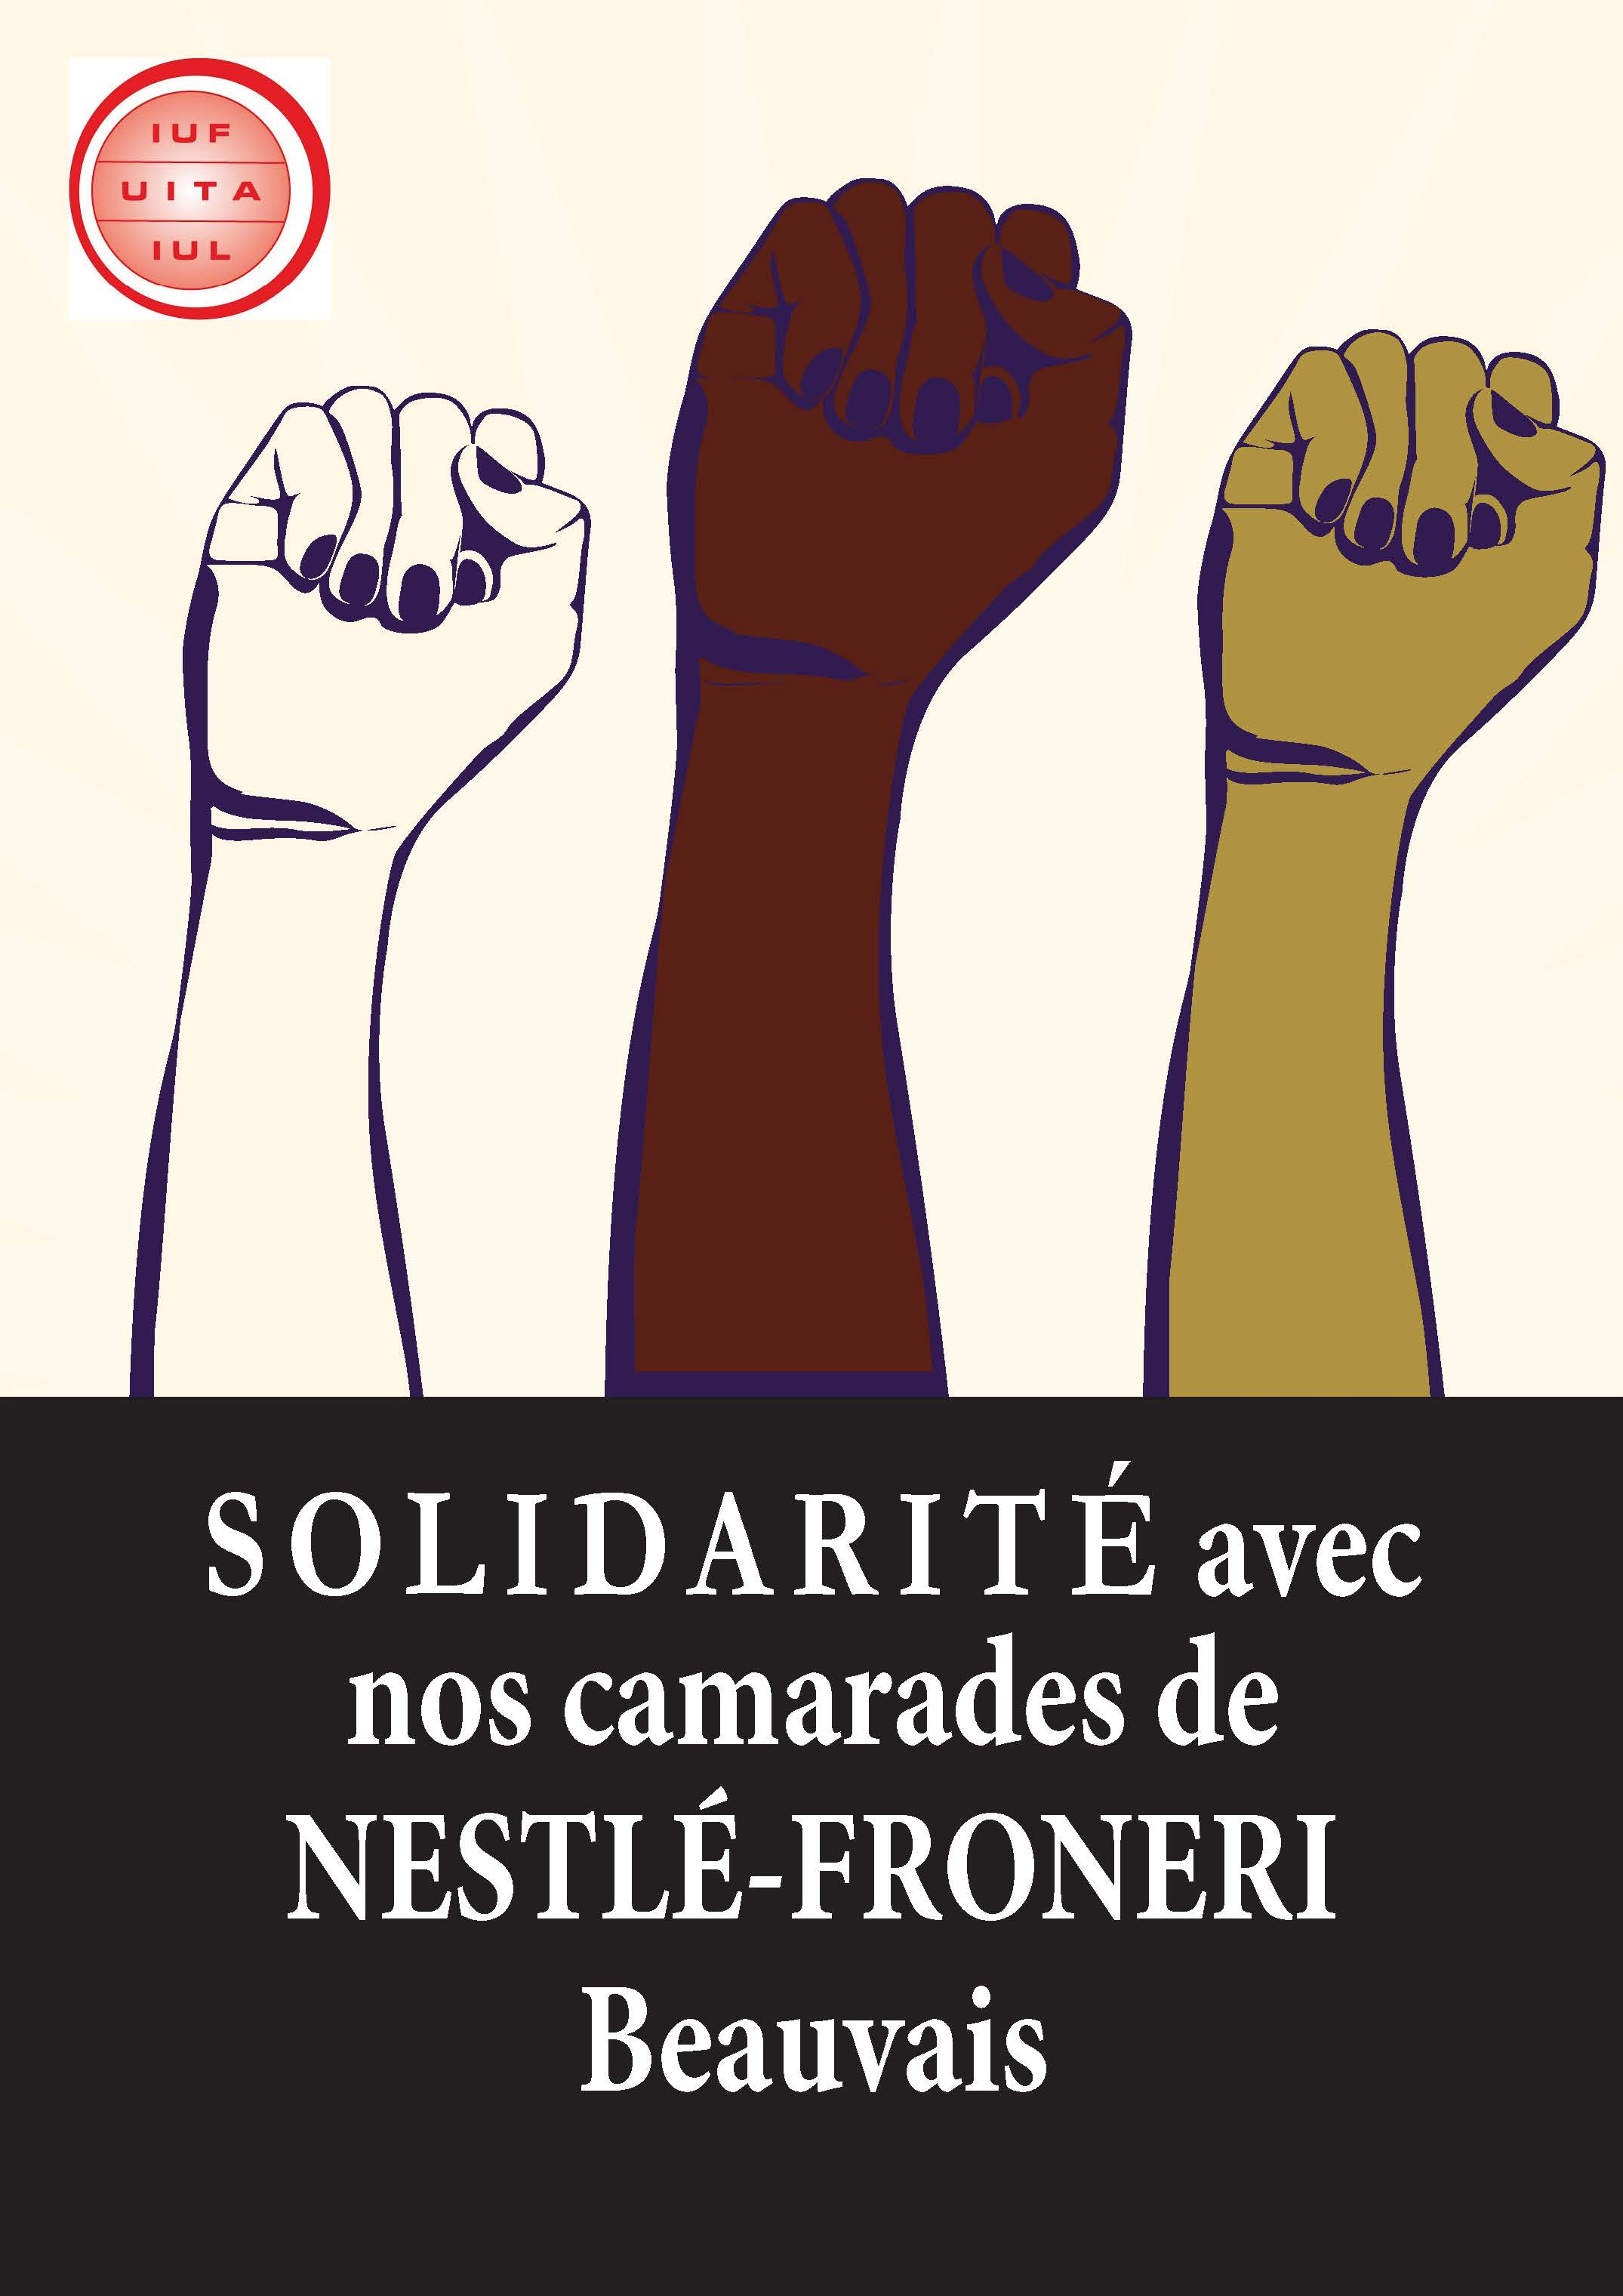 BeauvaisSolidarity-fr